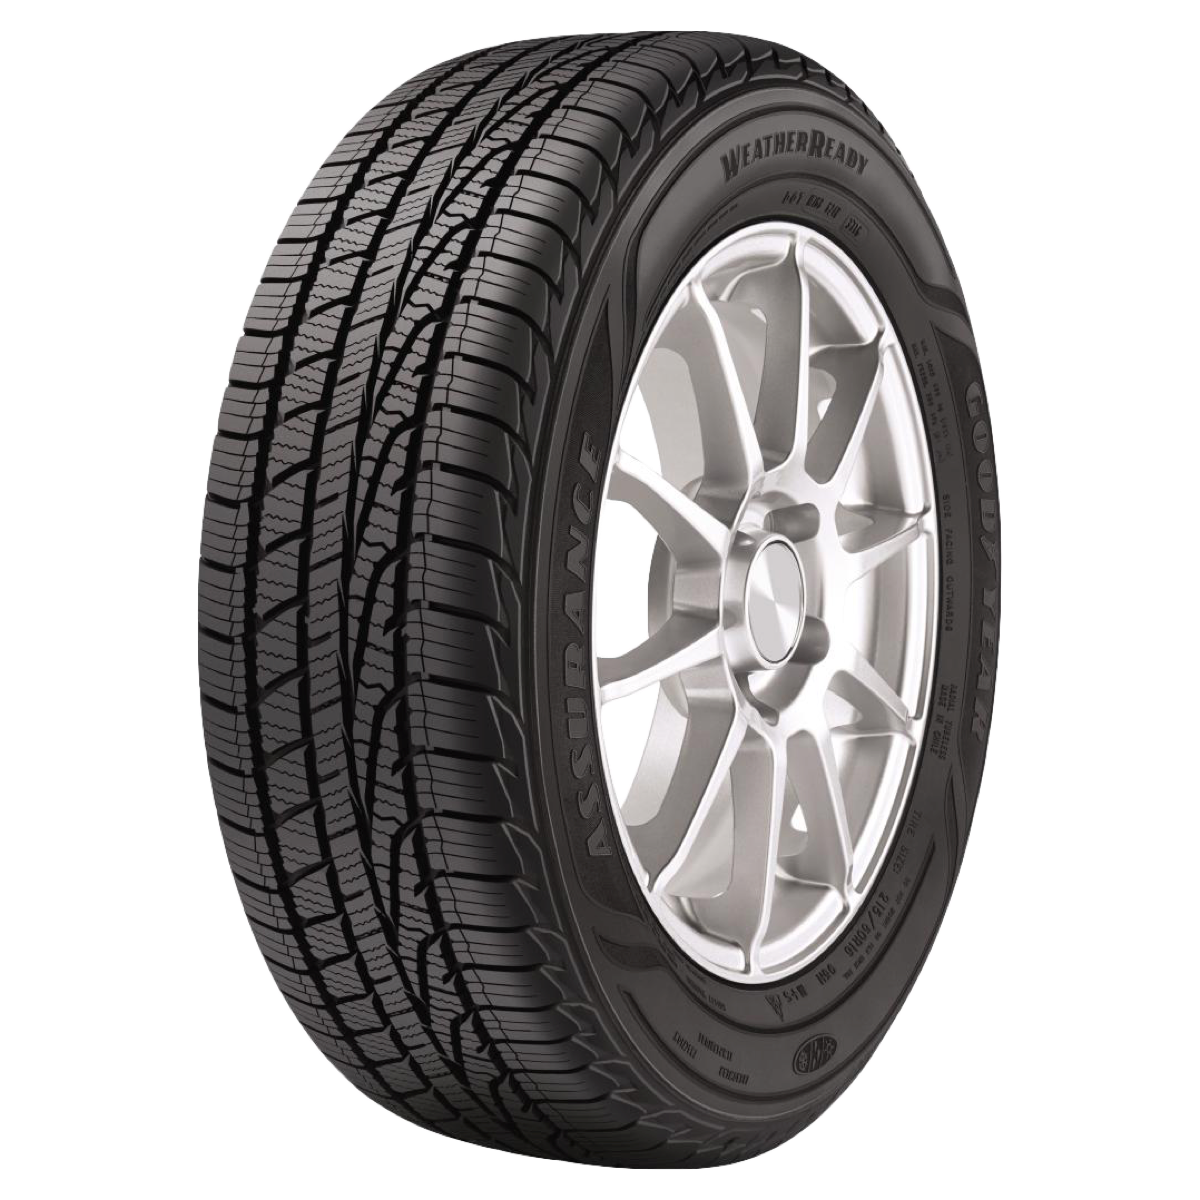 Wheel clipart semi tire. Suv tires goodyear canada